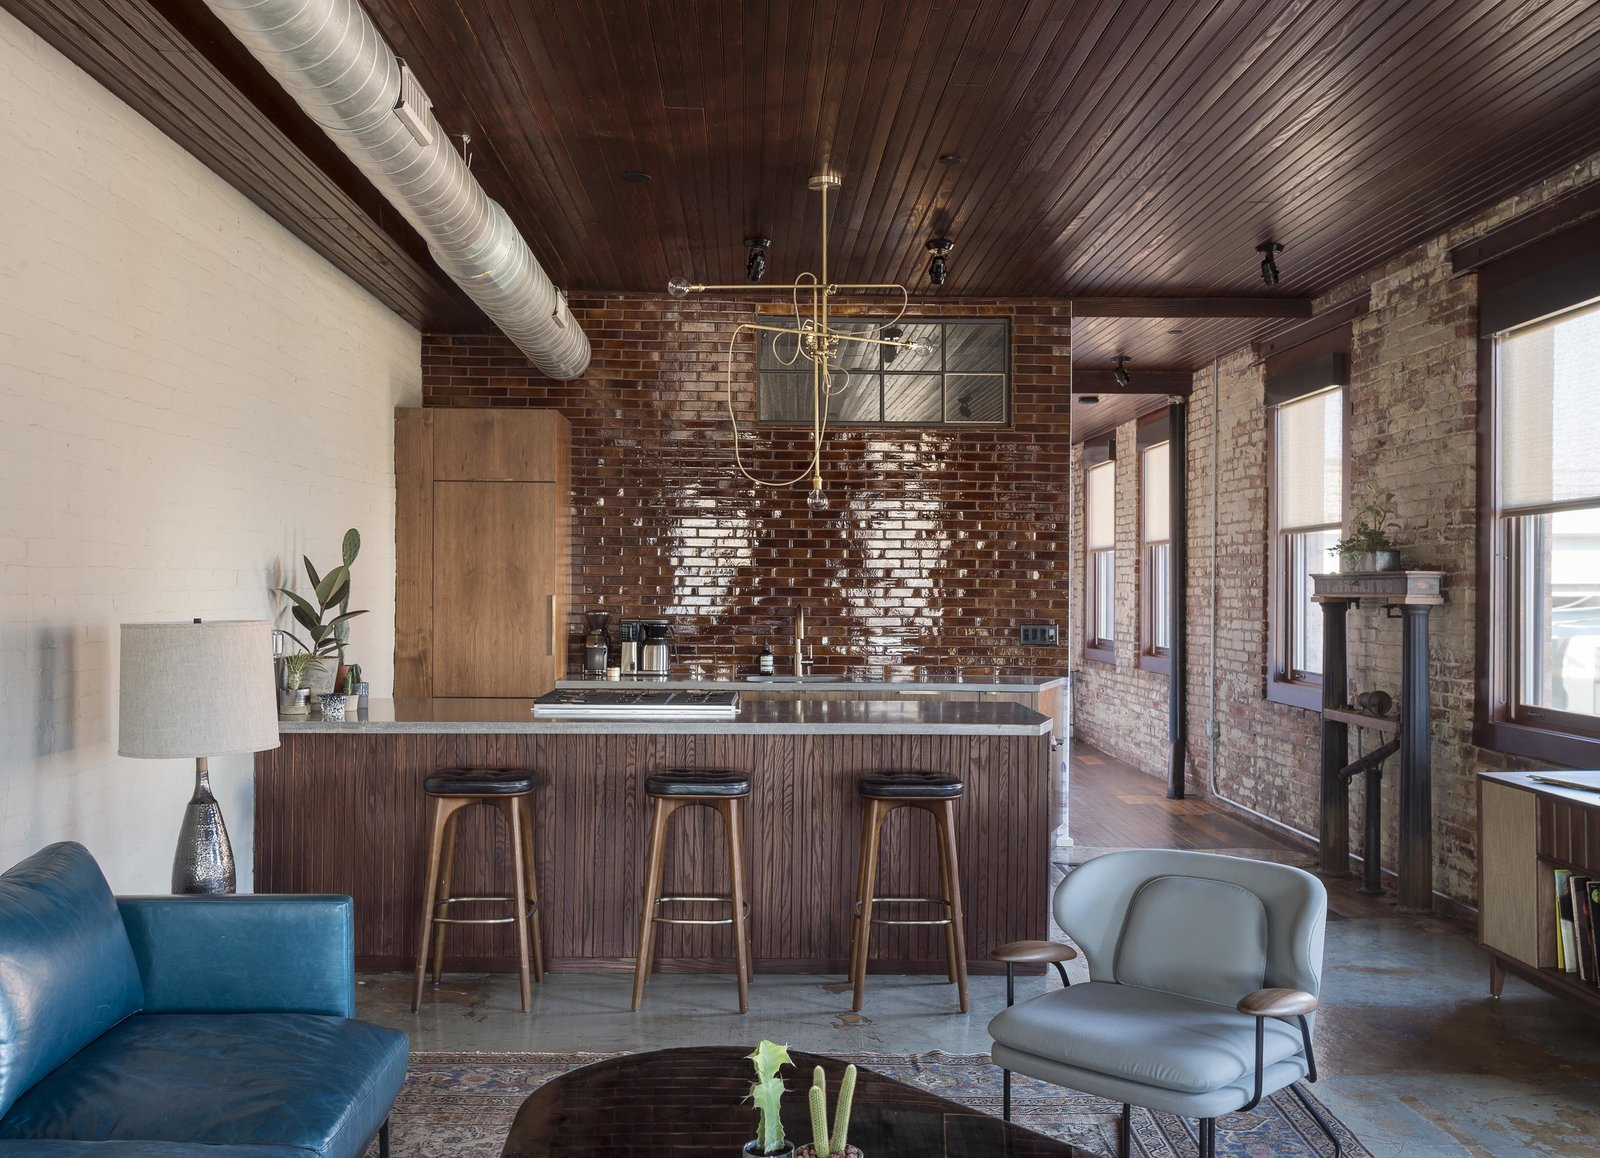 Tagged: Stools, Pendant Lighting, Bar, Concrete Floor, Kitchen, Rug Floor, and Granite Counter.  Mulherin's Hotel by Daniel Olsovsky